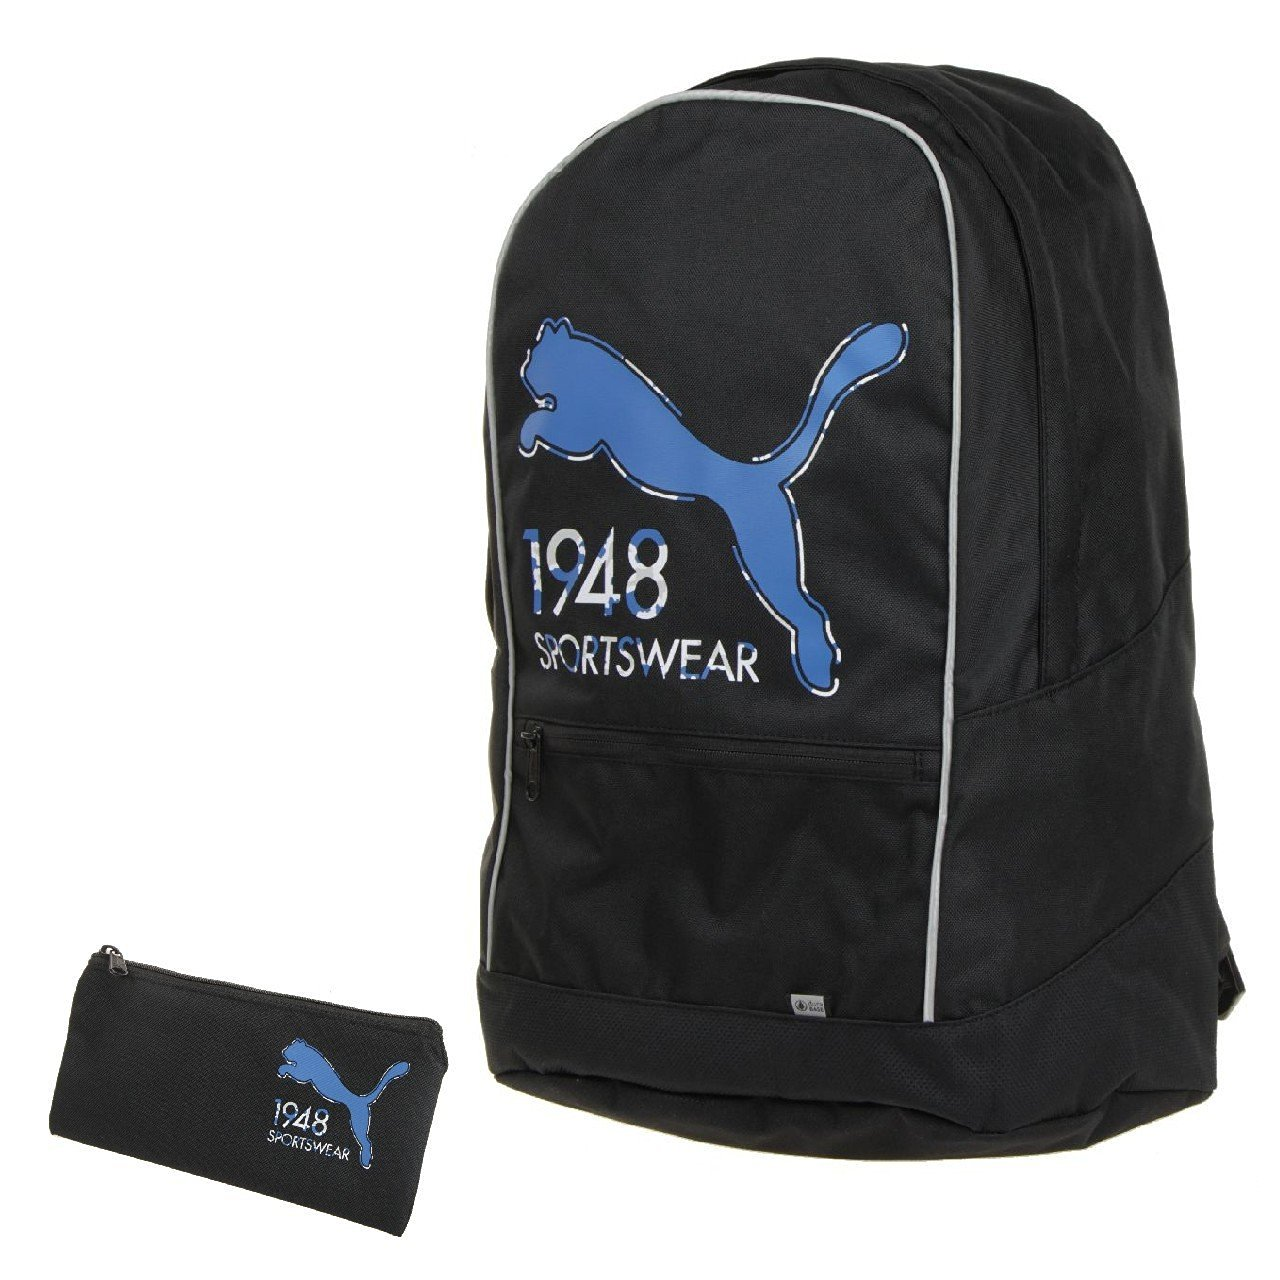 20898445a7 Get Quotations · PUMA Pioneer Backpack for Sports Leisure Travel School